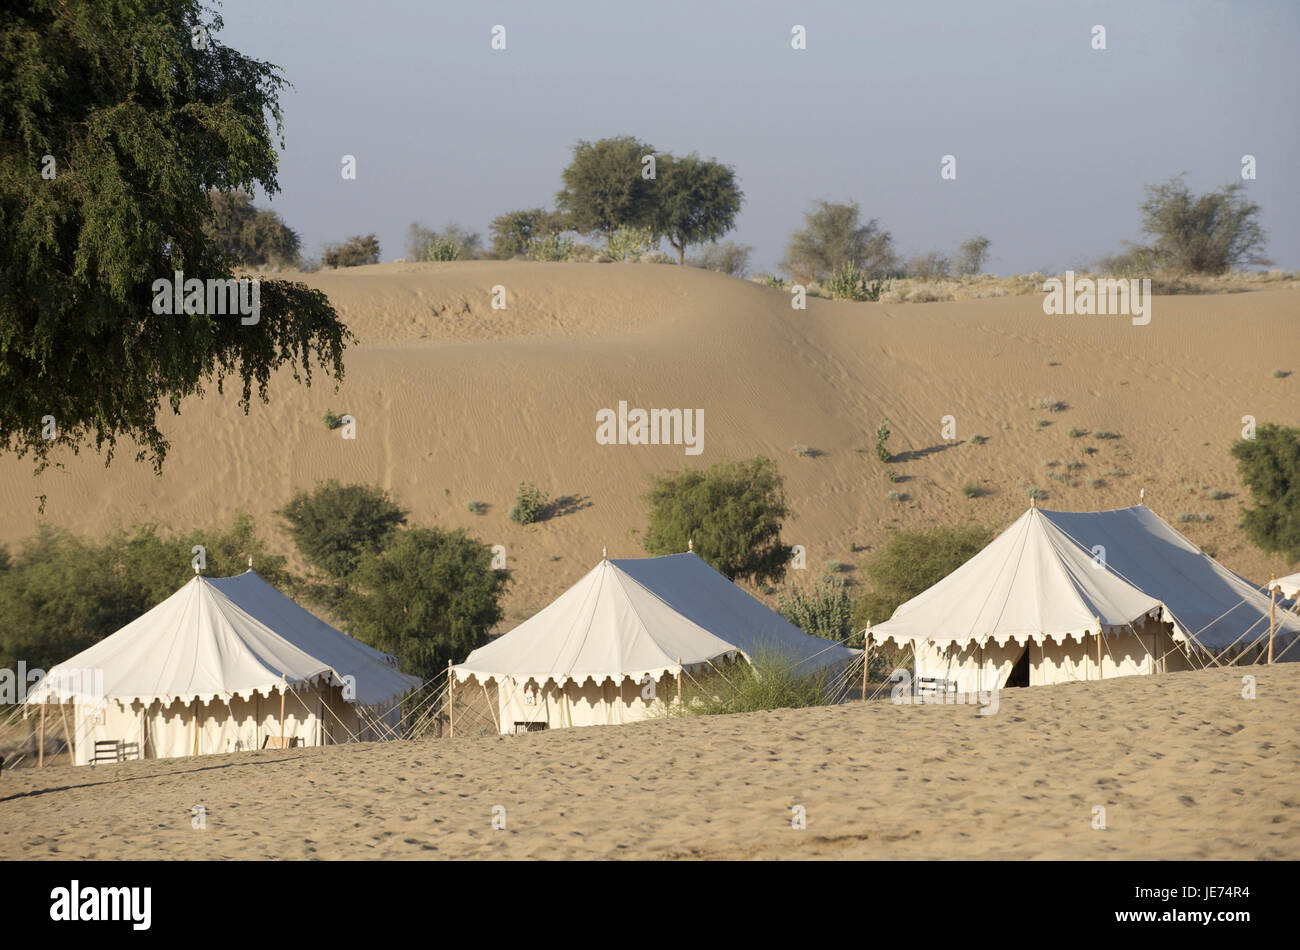 India Rajasthan Manvar wild c& with tents & India Rajasthan Manvar wild camp with tents Stock Photo ...